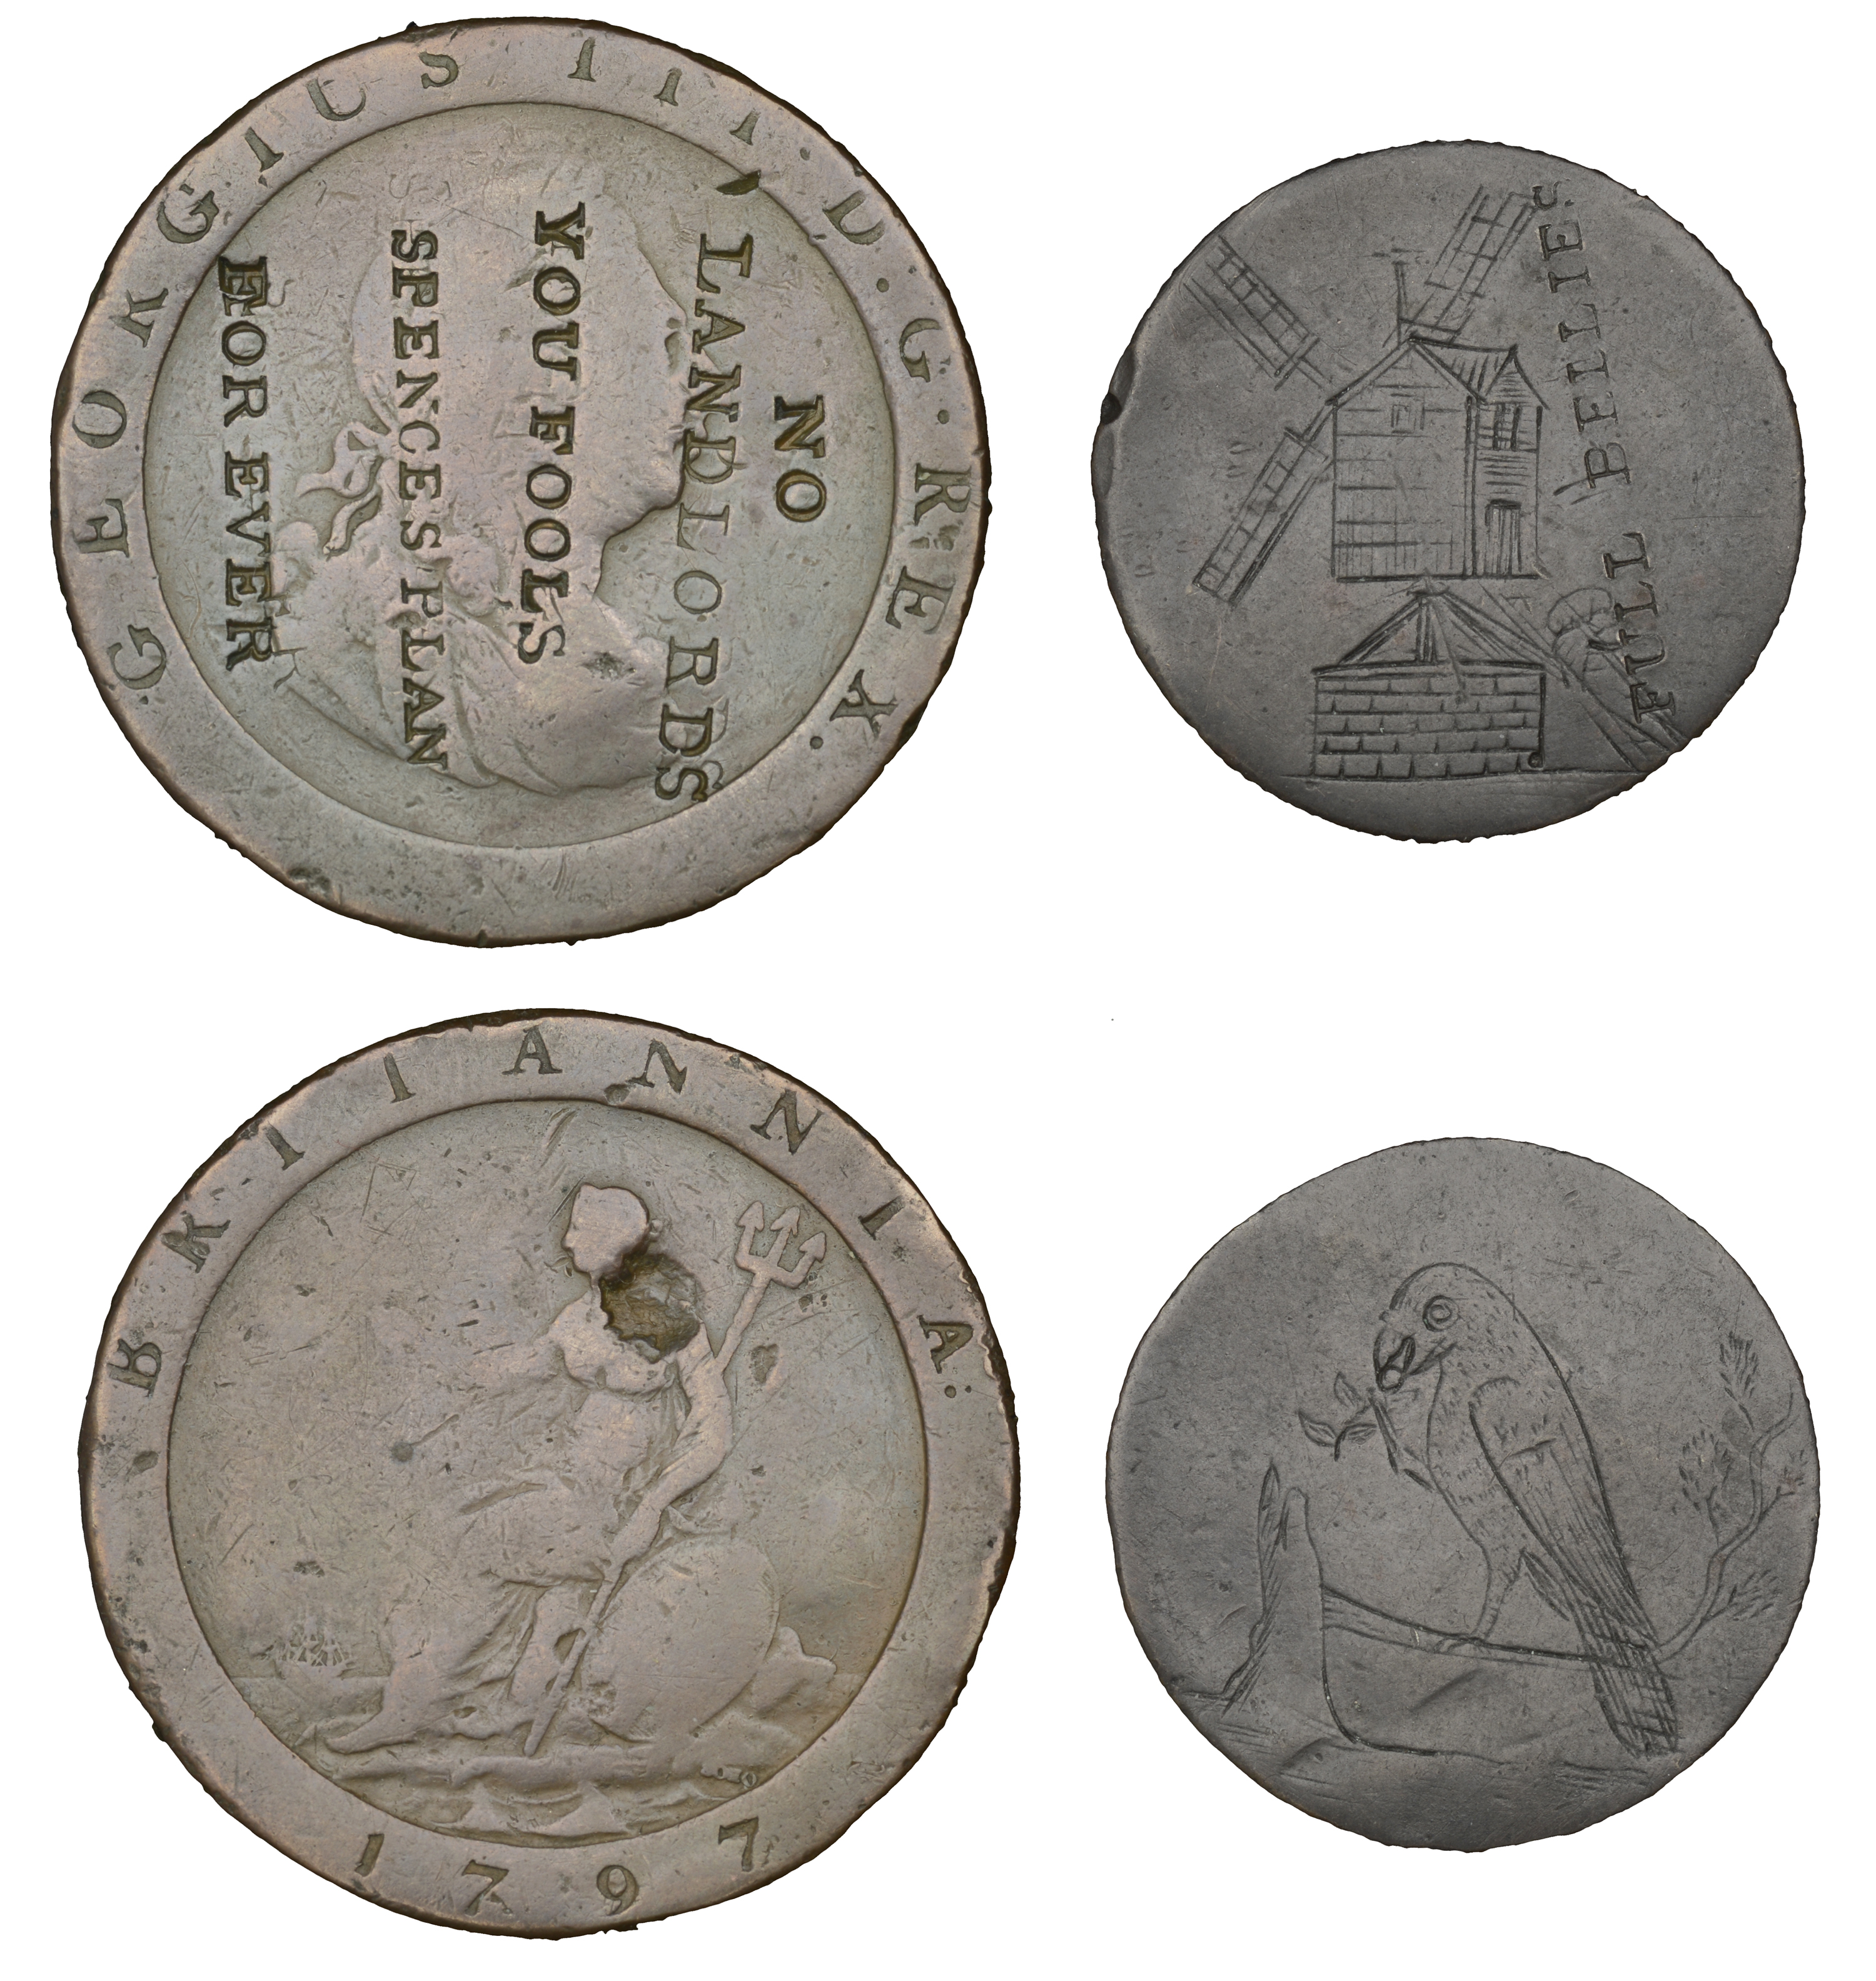 British Tokens from the Collection of the late Bill McKivor